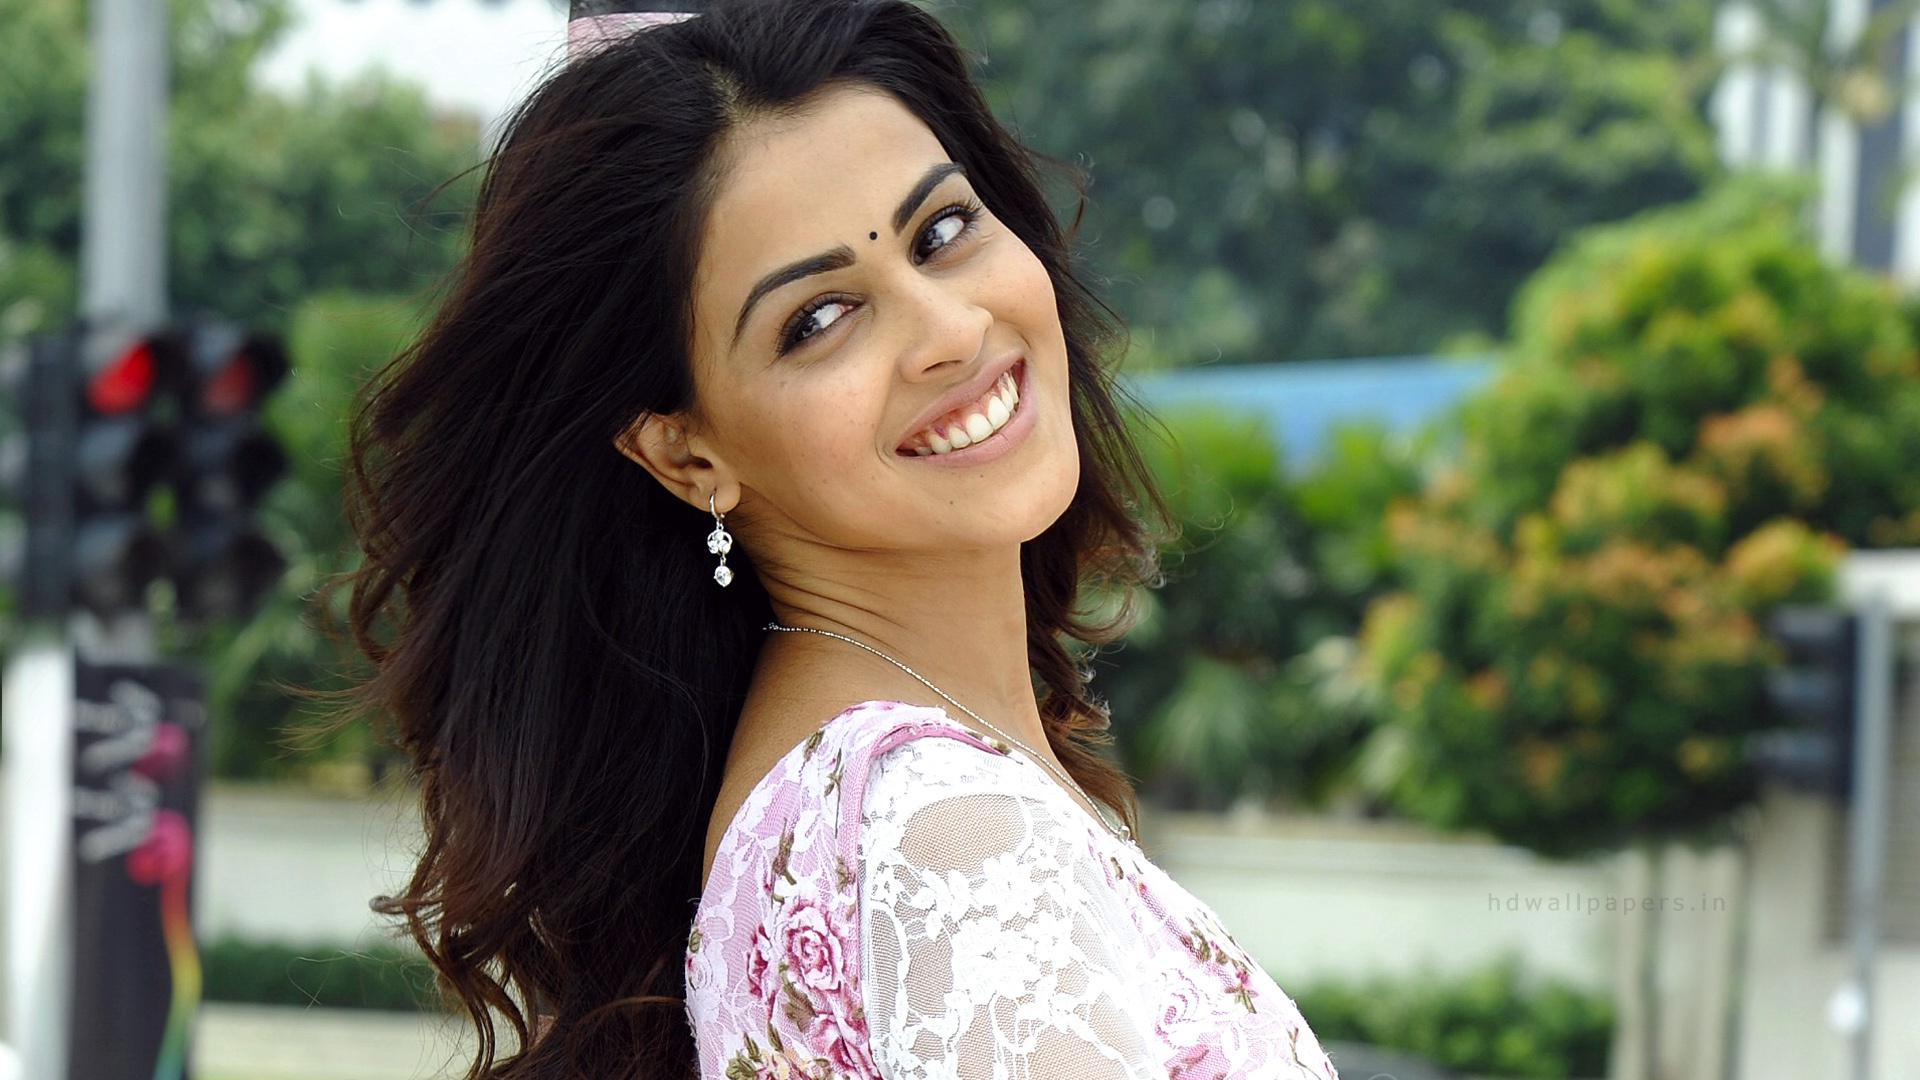 genelia d'souza wallpapers high resolution and quality download